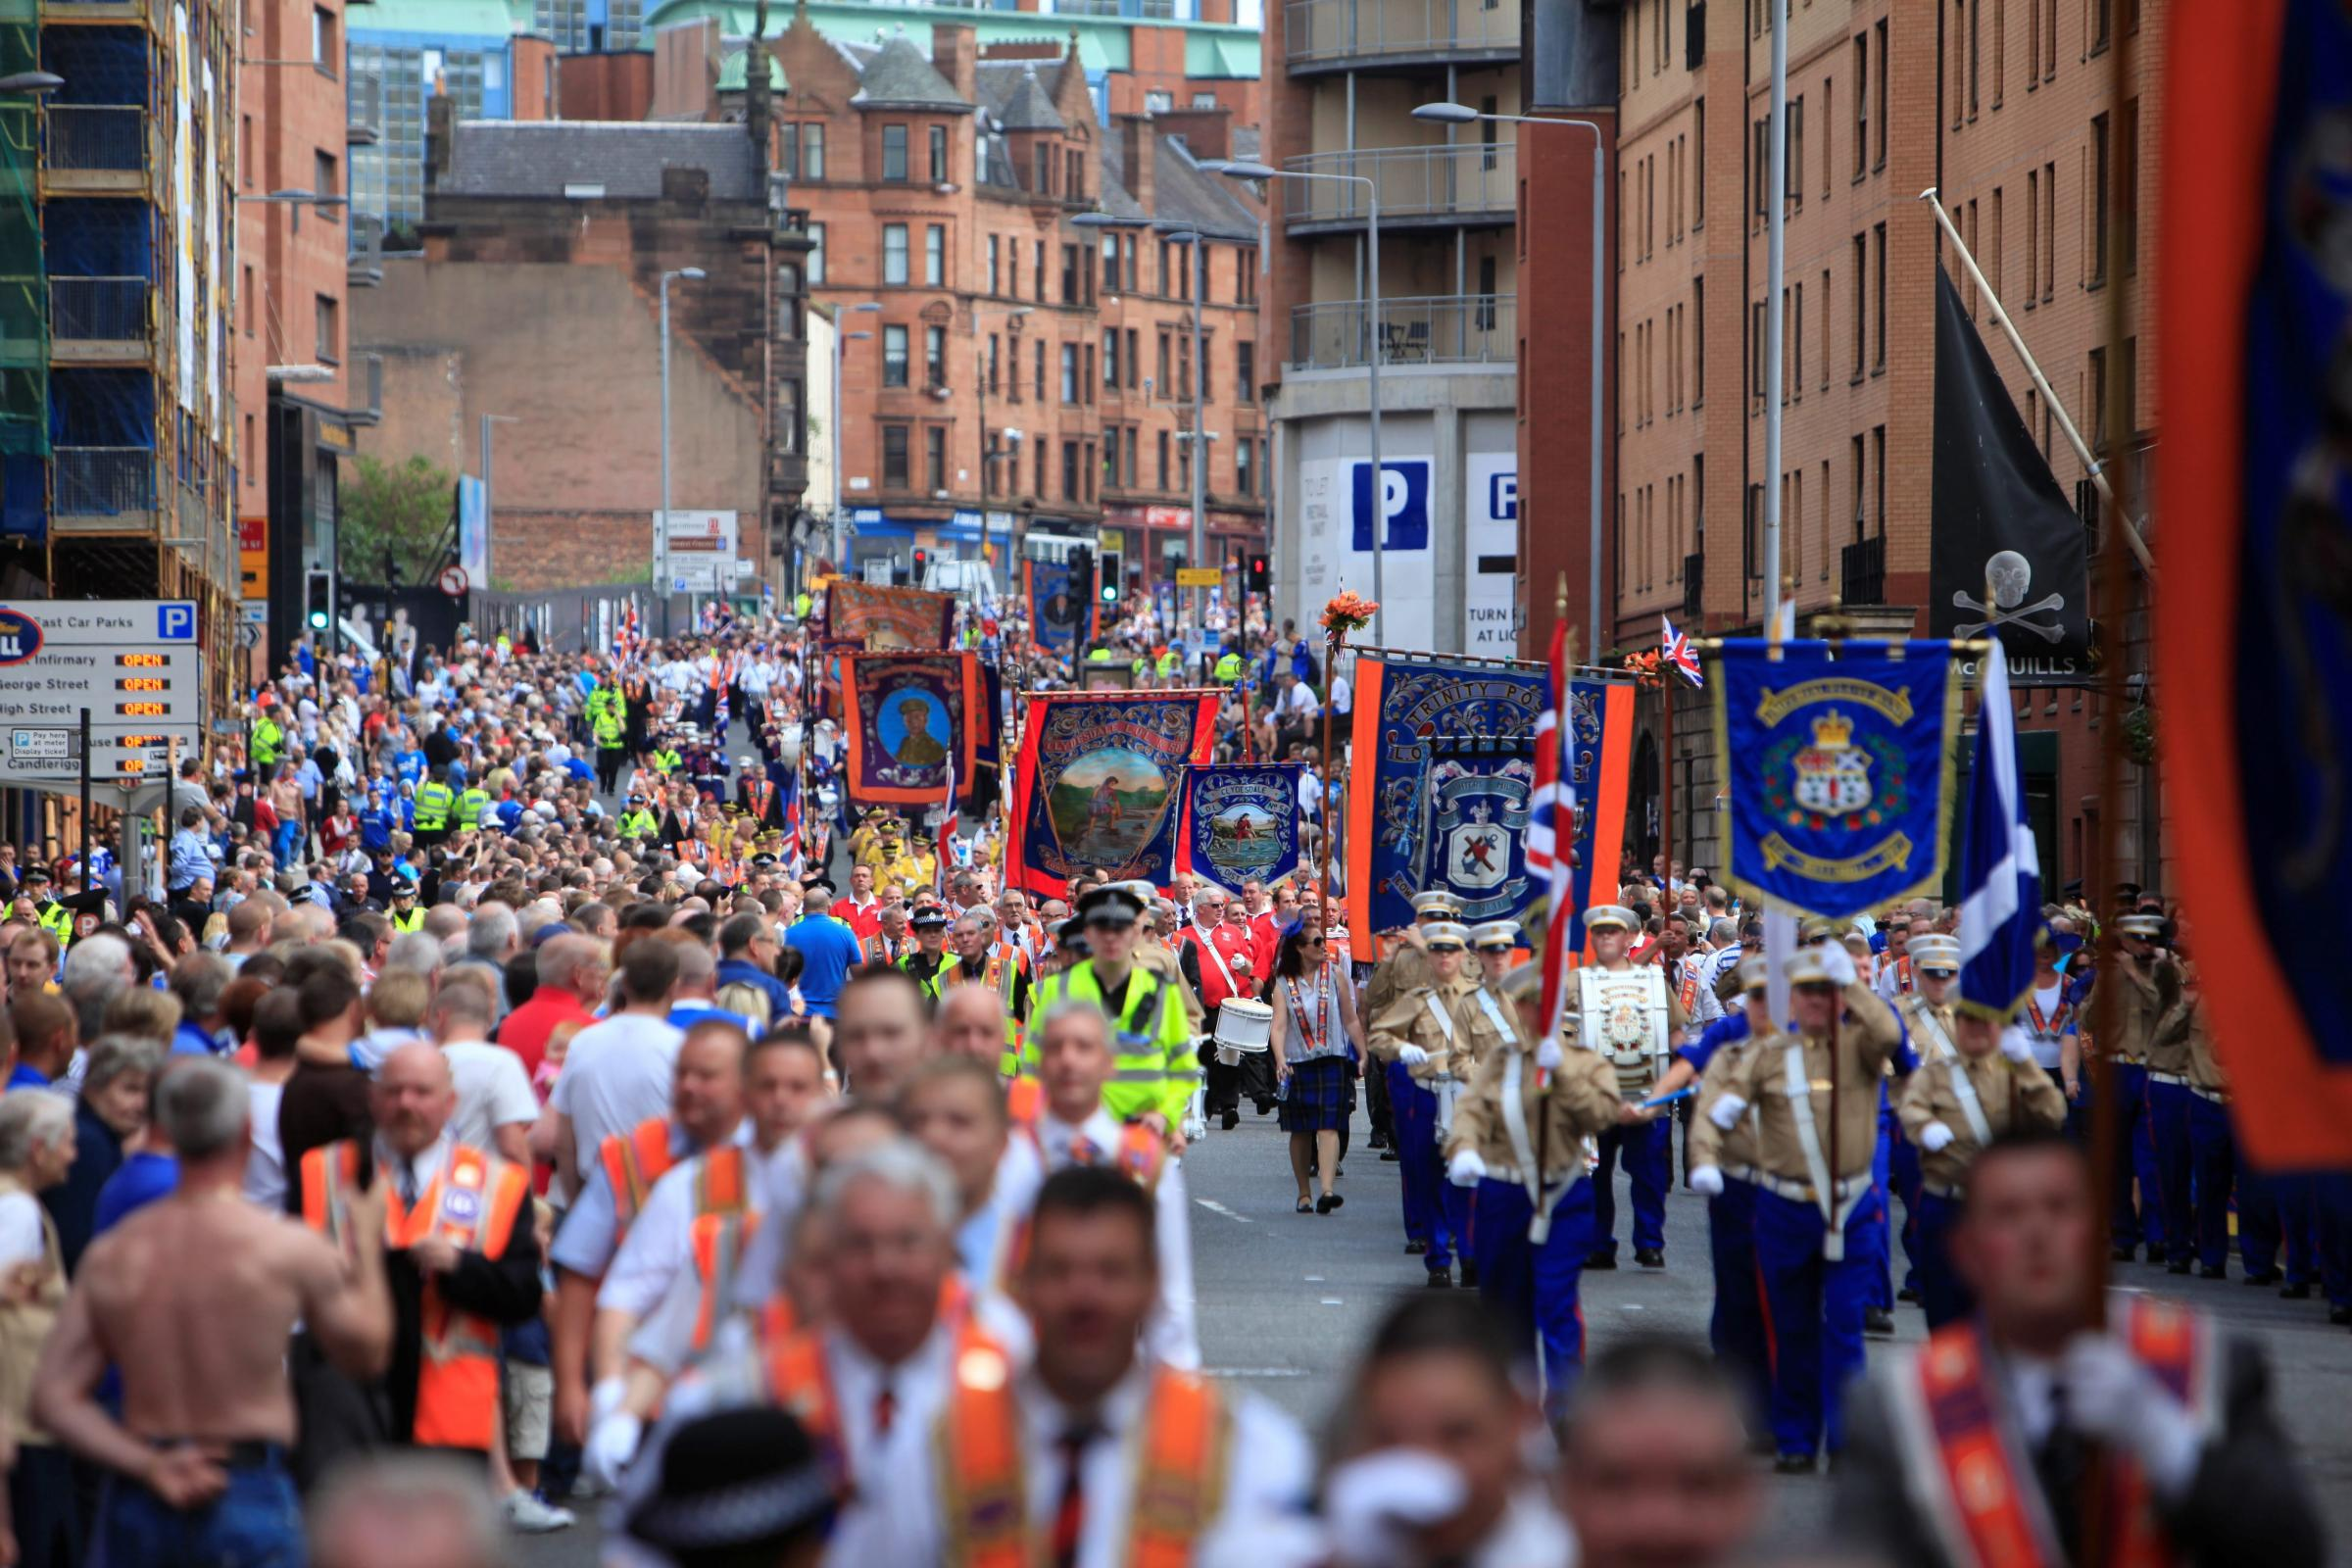 Petition to ban Orange walks in Glasgow reaches 40,000 signatures